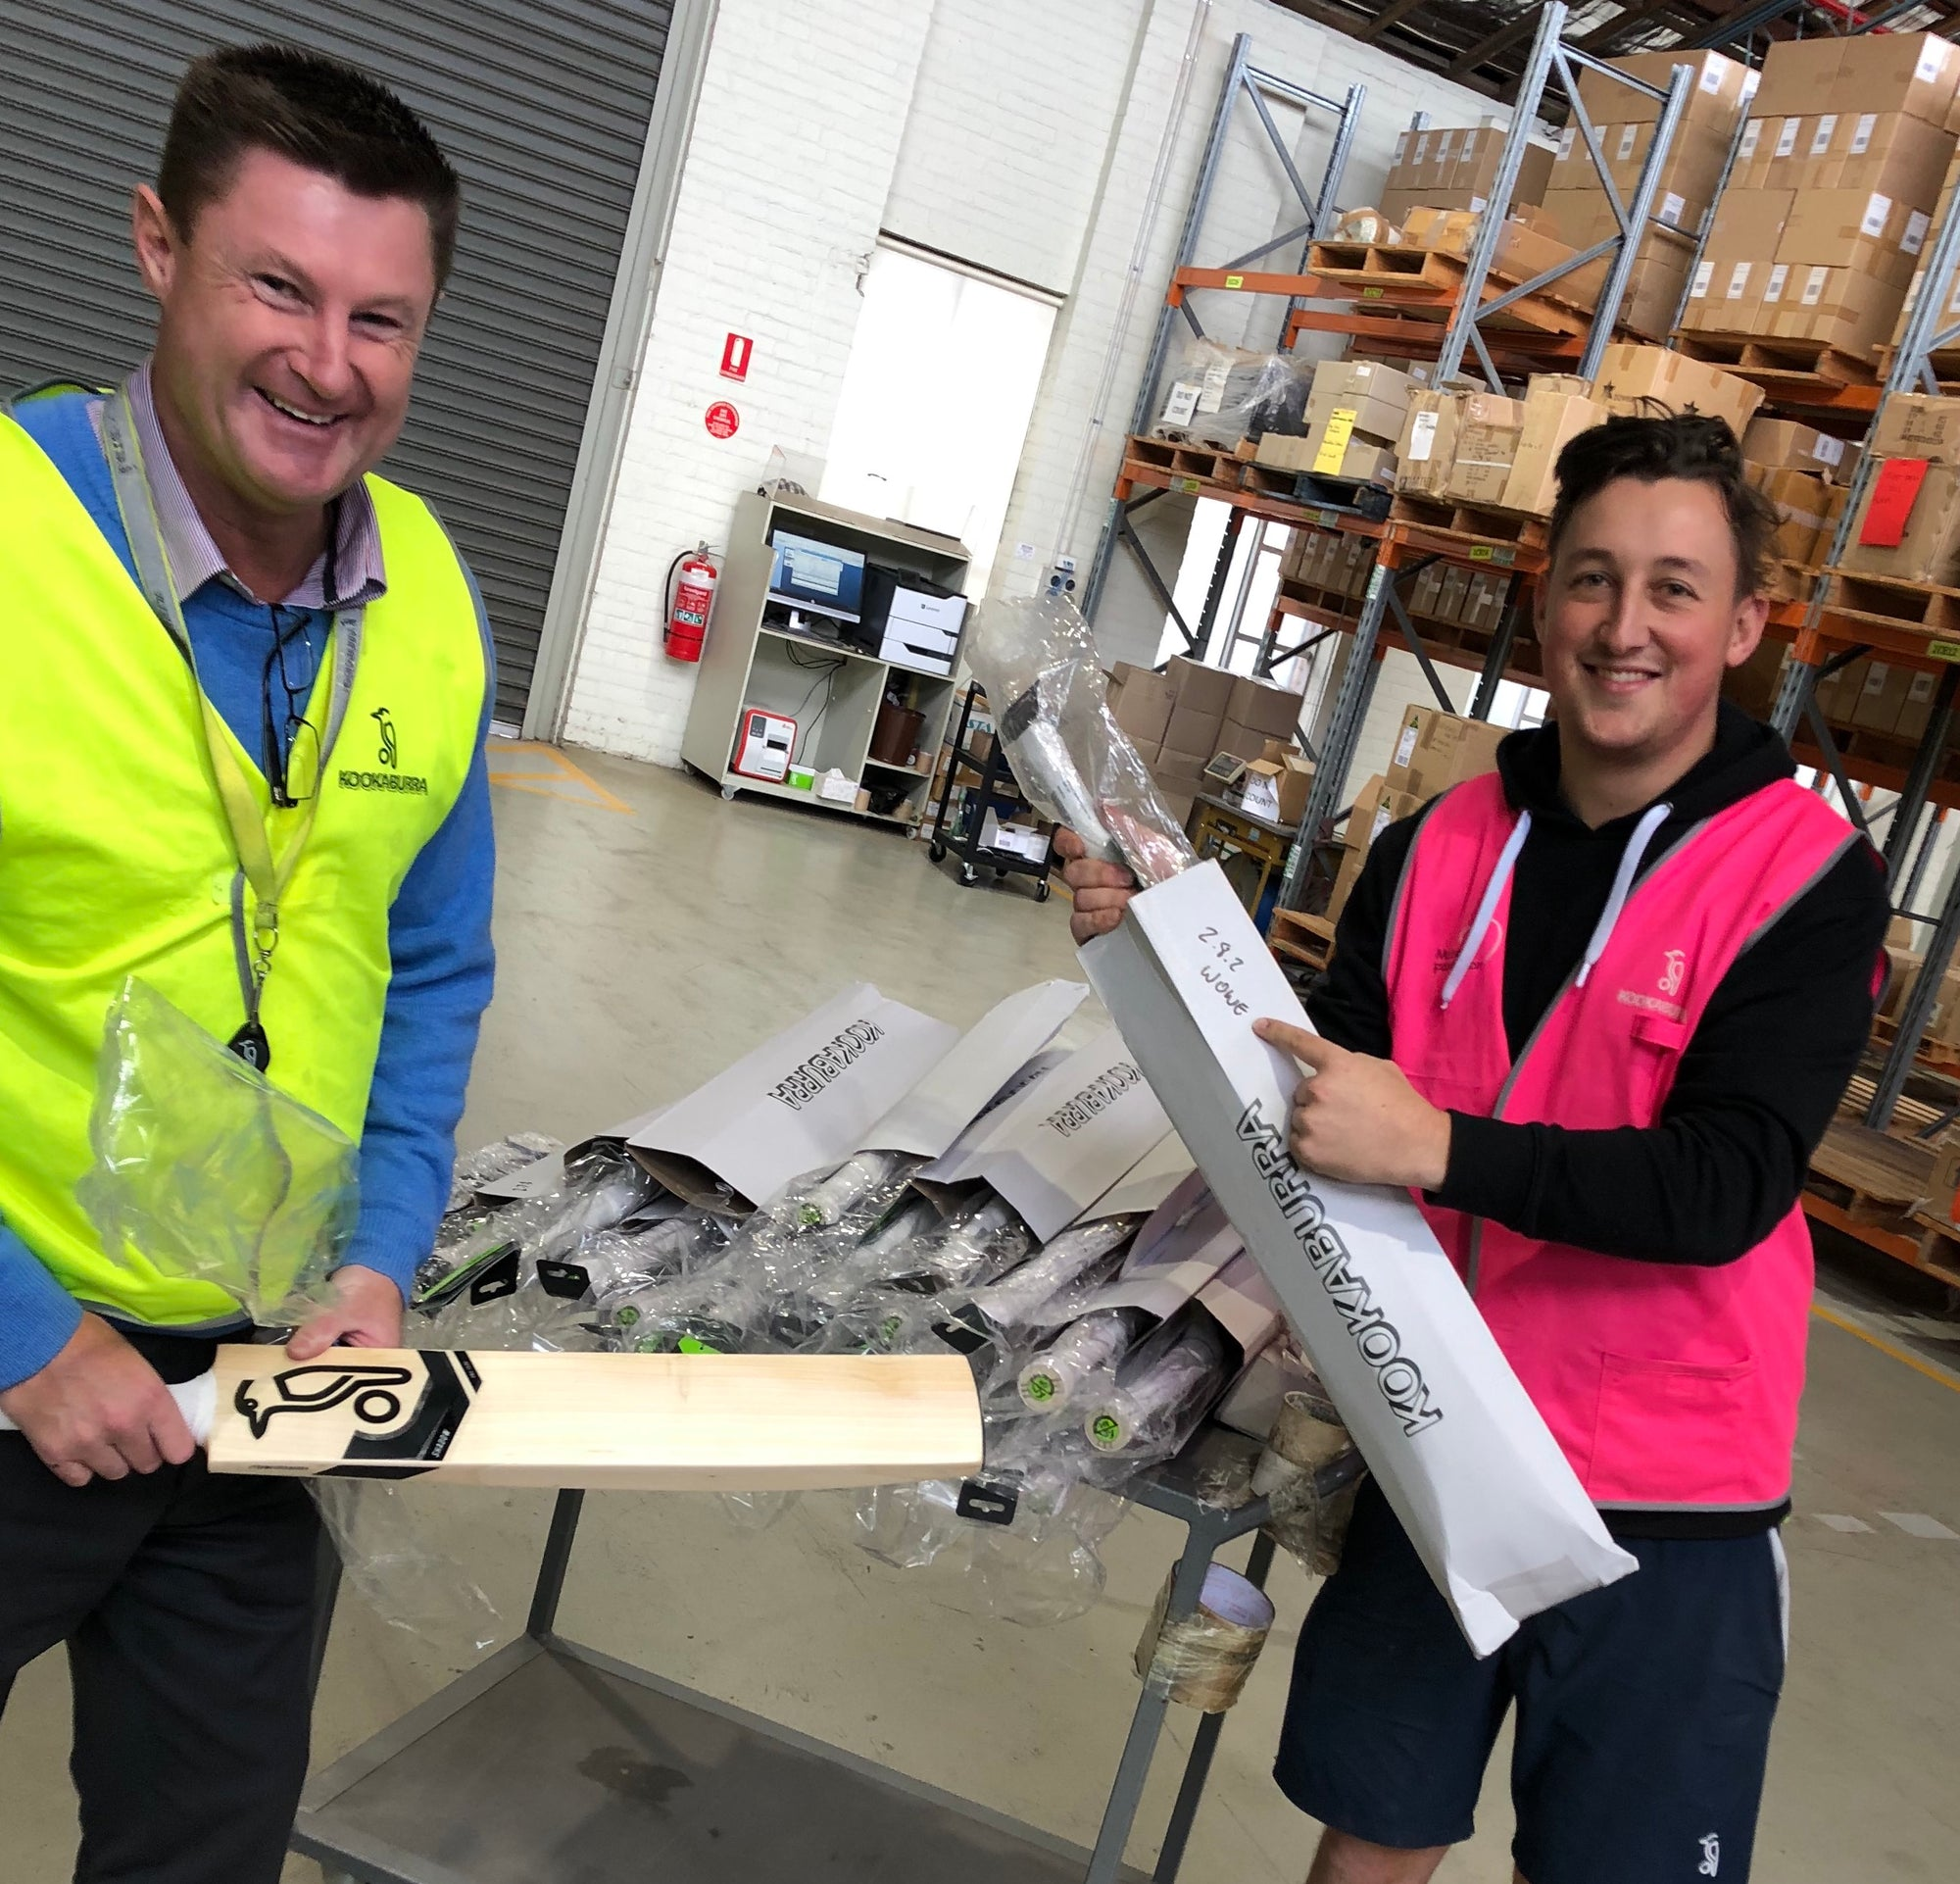 Kookaburra 2019/20 Bats - Freshly Hand Selected & Ready to Go!